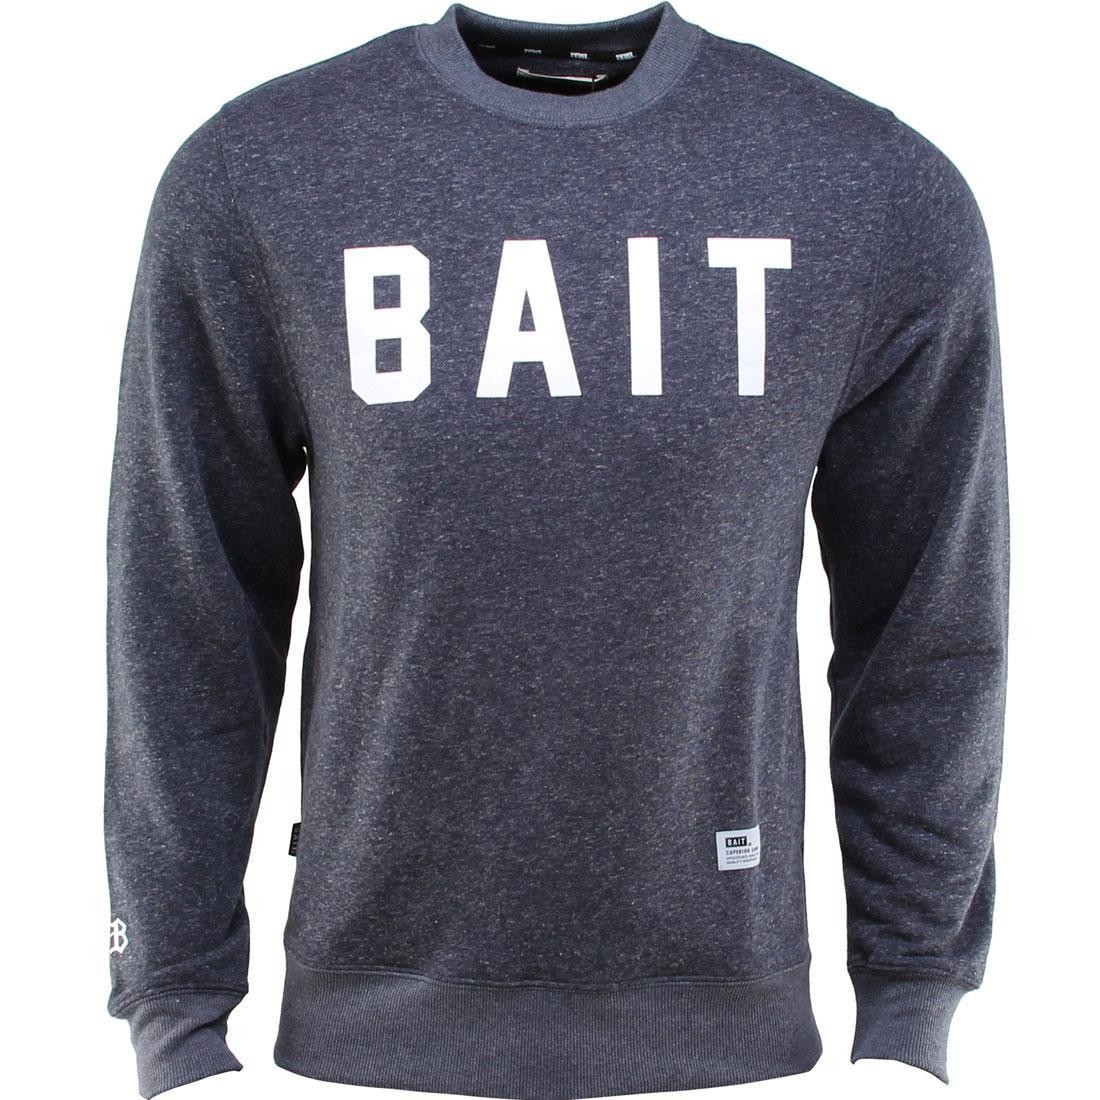 【海外限定】トップス カットソー POCKETS【 BAIT NAVY INVISIBLE POCKETS】 FITTED CREWNECK NAVY】, おさいほう屋:0881b928 --- officewill.xsrv.jp